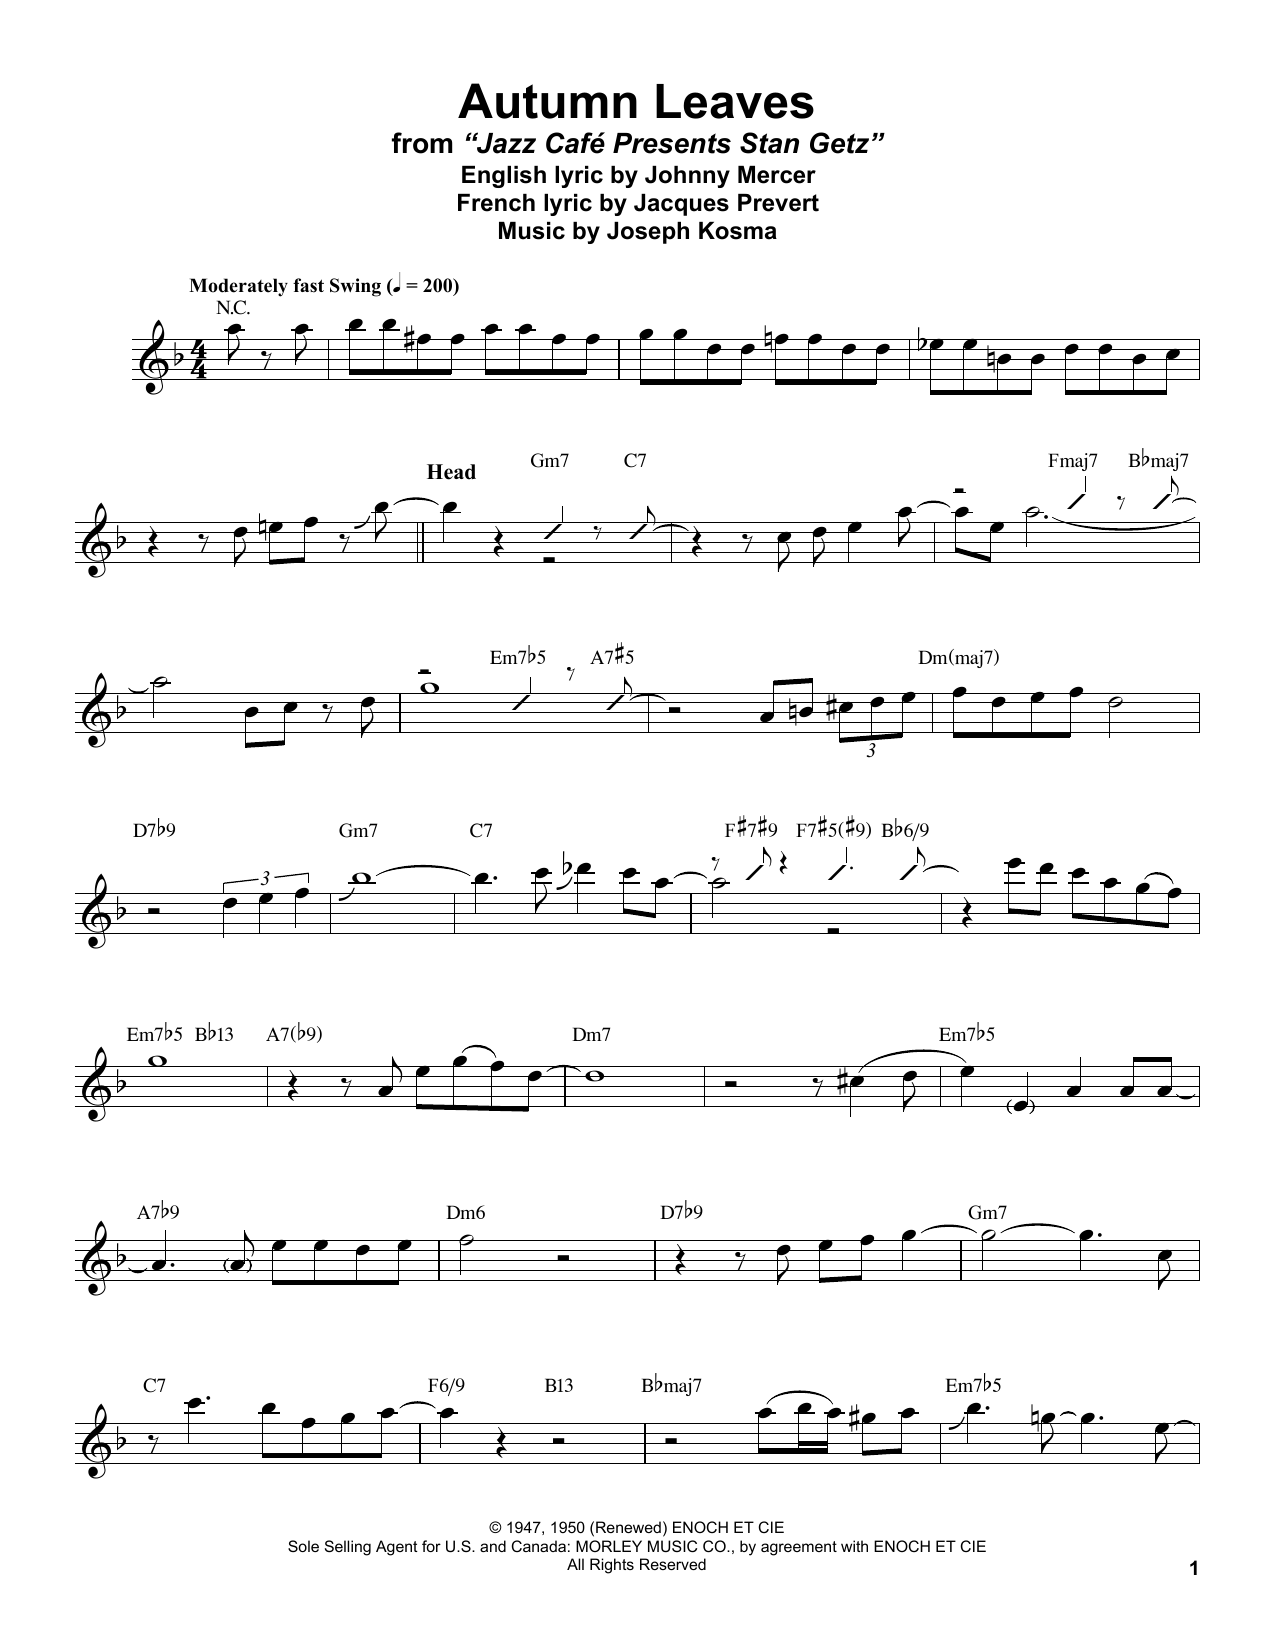 Stan Getz Autumn Leaves Sheet Music Notes Amp Chords In